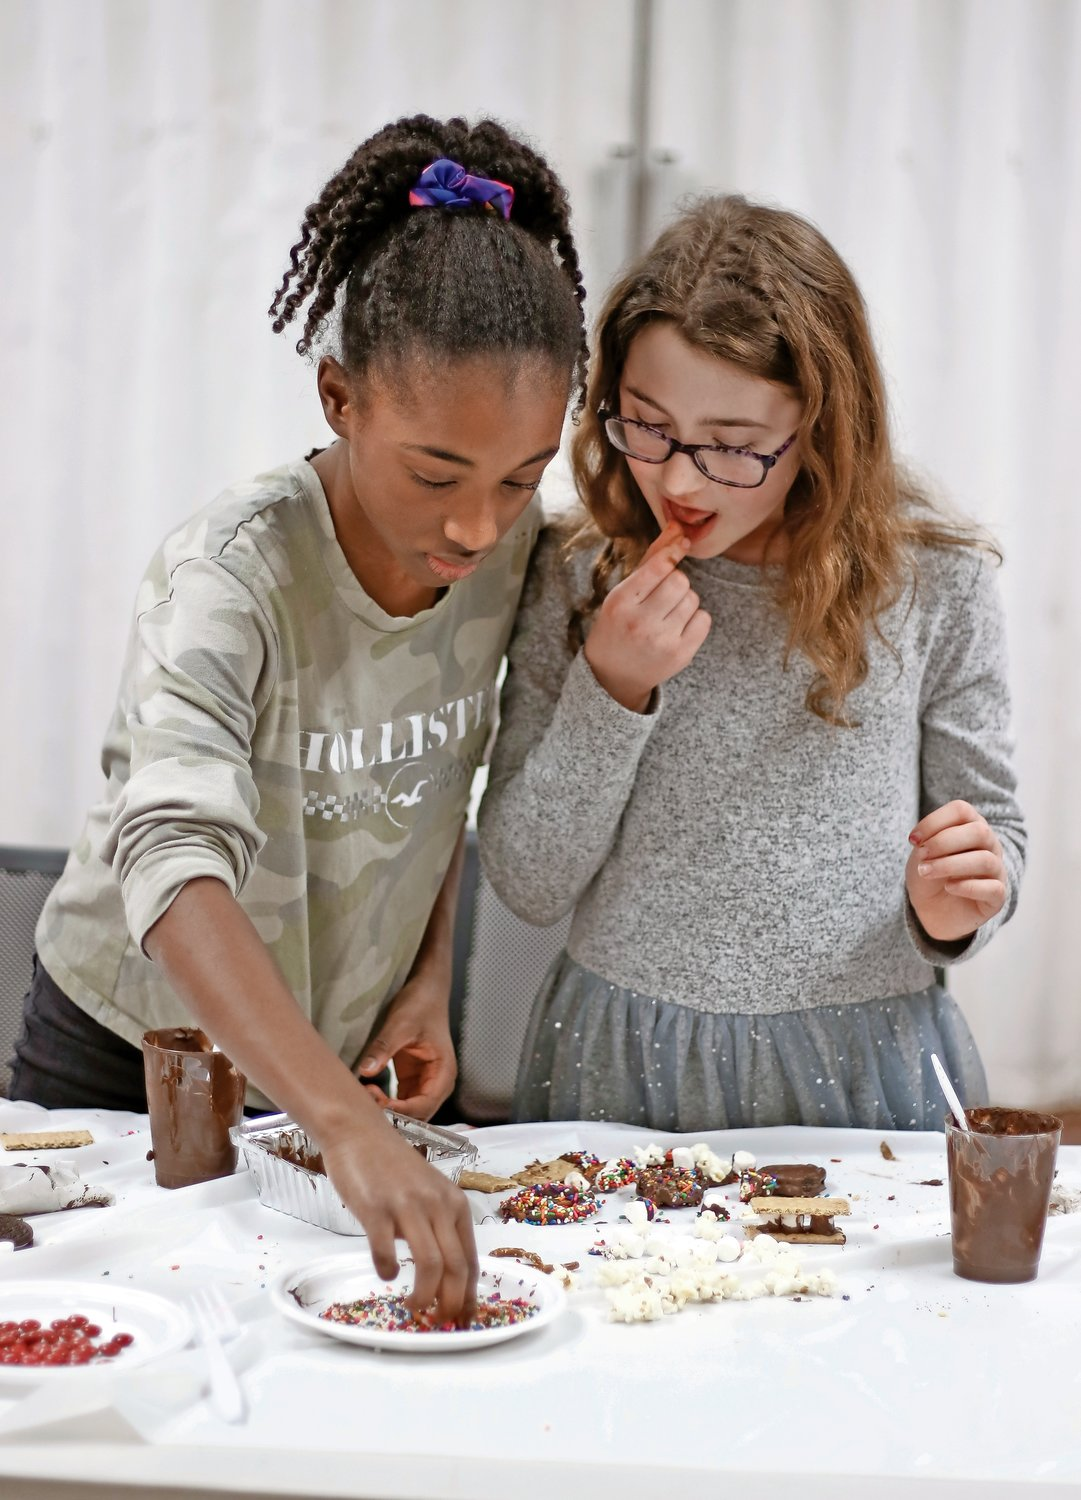 Aspiring pastry chefs Clairevy Maingrette, 12, left, and Claire Arnoff, 11, practiced their chocolate-making skills at the Bellmore Memorial Library on Feb. 3. There they created heart-shaped lollipops to give to their family and friends for Valentine's Day.